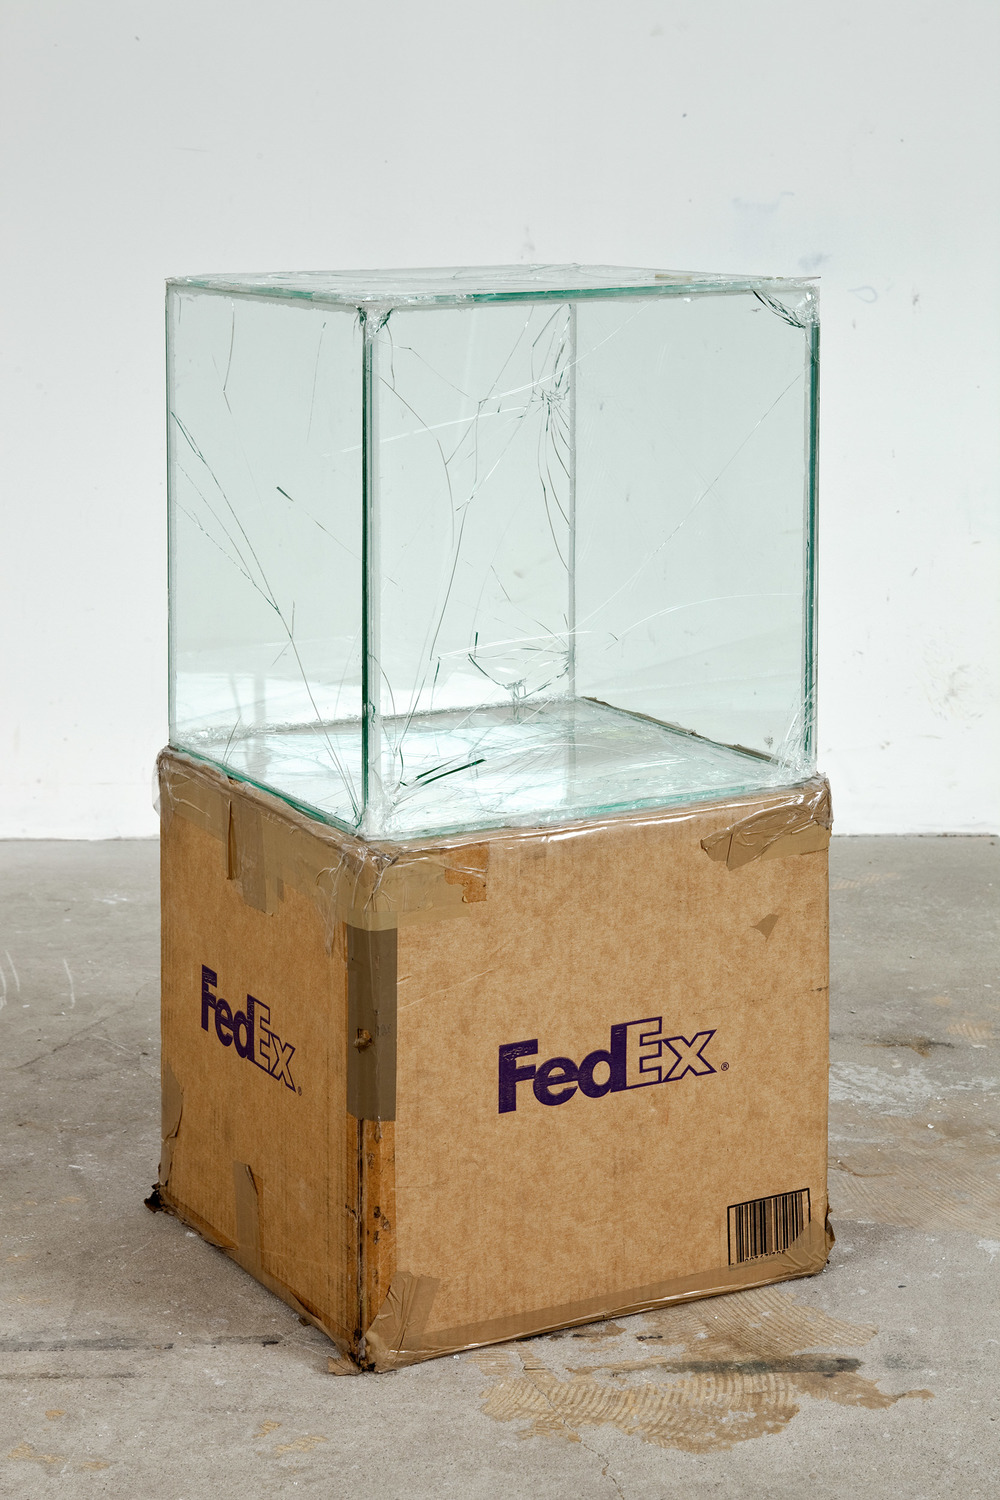 FedEx Kraft Box 2005 FEDEX 330504 10/05 SSCC, Priority Overnight, Los Angeles-Miami trk#865344981299, October 29–30, 2008, Priority Overnight, Miami–Ann Arbor trk#861049125115, March 03–04, 2009, Standard Overnight, Ann Arbor–Los Angeles trk#868274625749, July 09–10, 2009, Standard Overnight, Los Angeles–San Francisco trk#878069766471, August 27–28, 2009, Standard Overnight, San Francisco–Los Angeles trk#870342520145, November 12–13, 2009, International Priority, Los Angeles–London trk#798269222978, April 10–12, 2012    2008–   Laminated glass, FedEx shipping box, accrued FedEx shipping and tracking labels, silicone, metal, tape  16 x 16 x 16 inches   FedEx Glass Works, 2007–